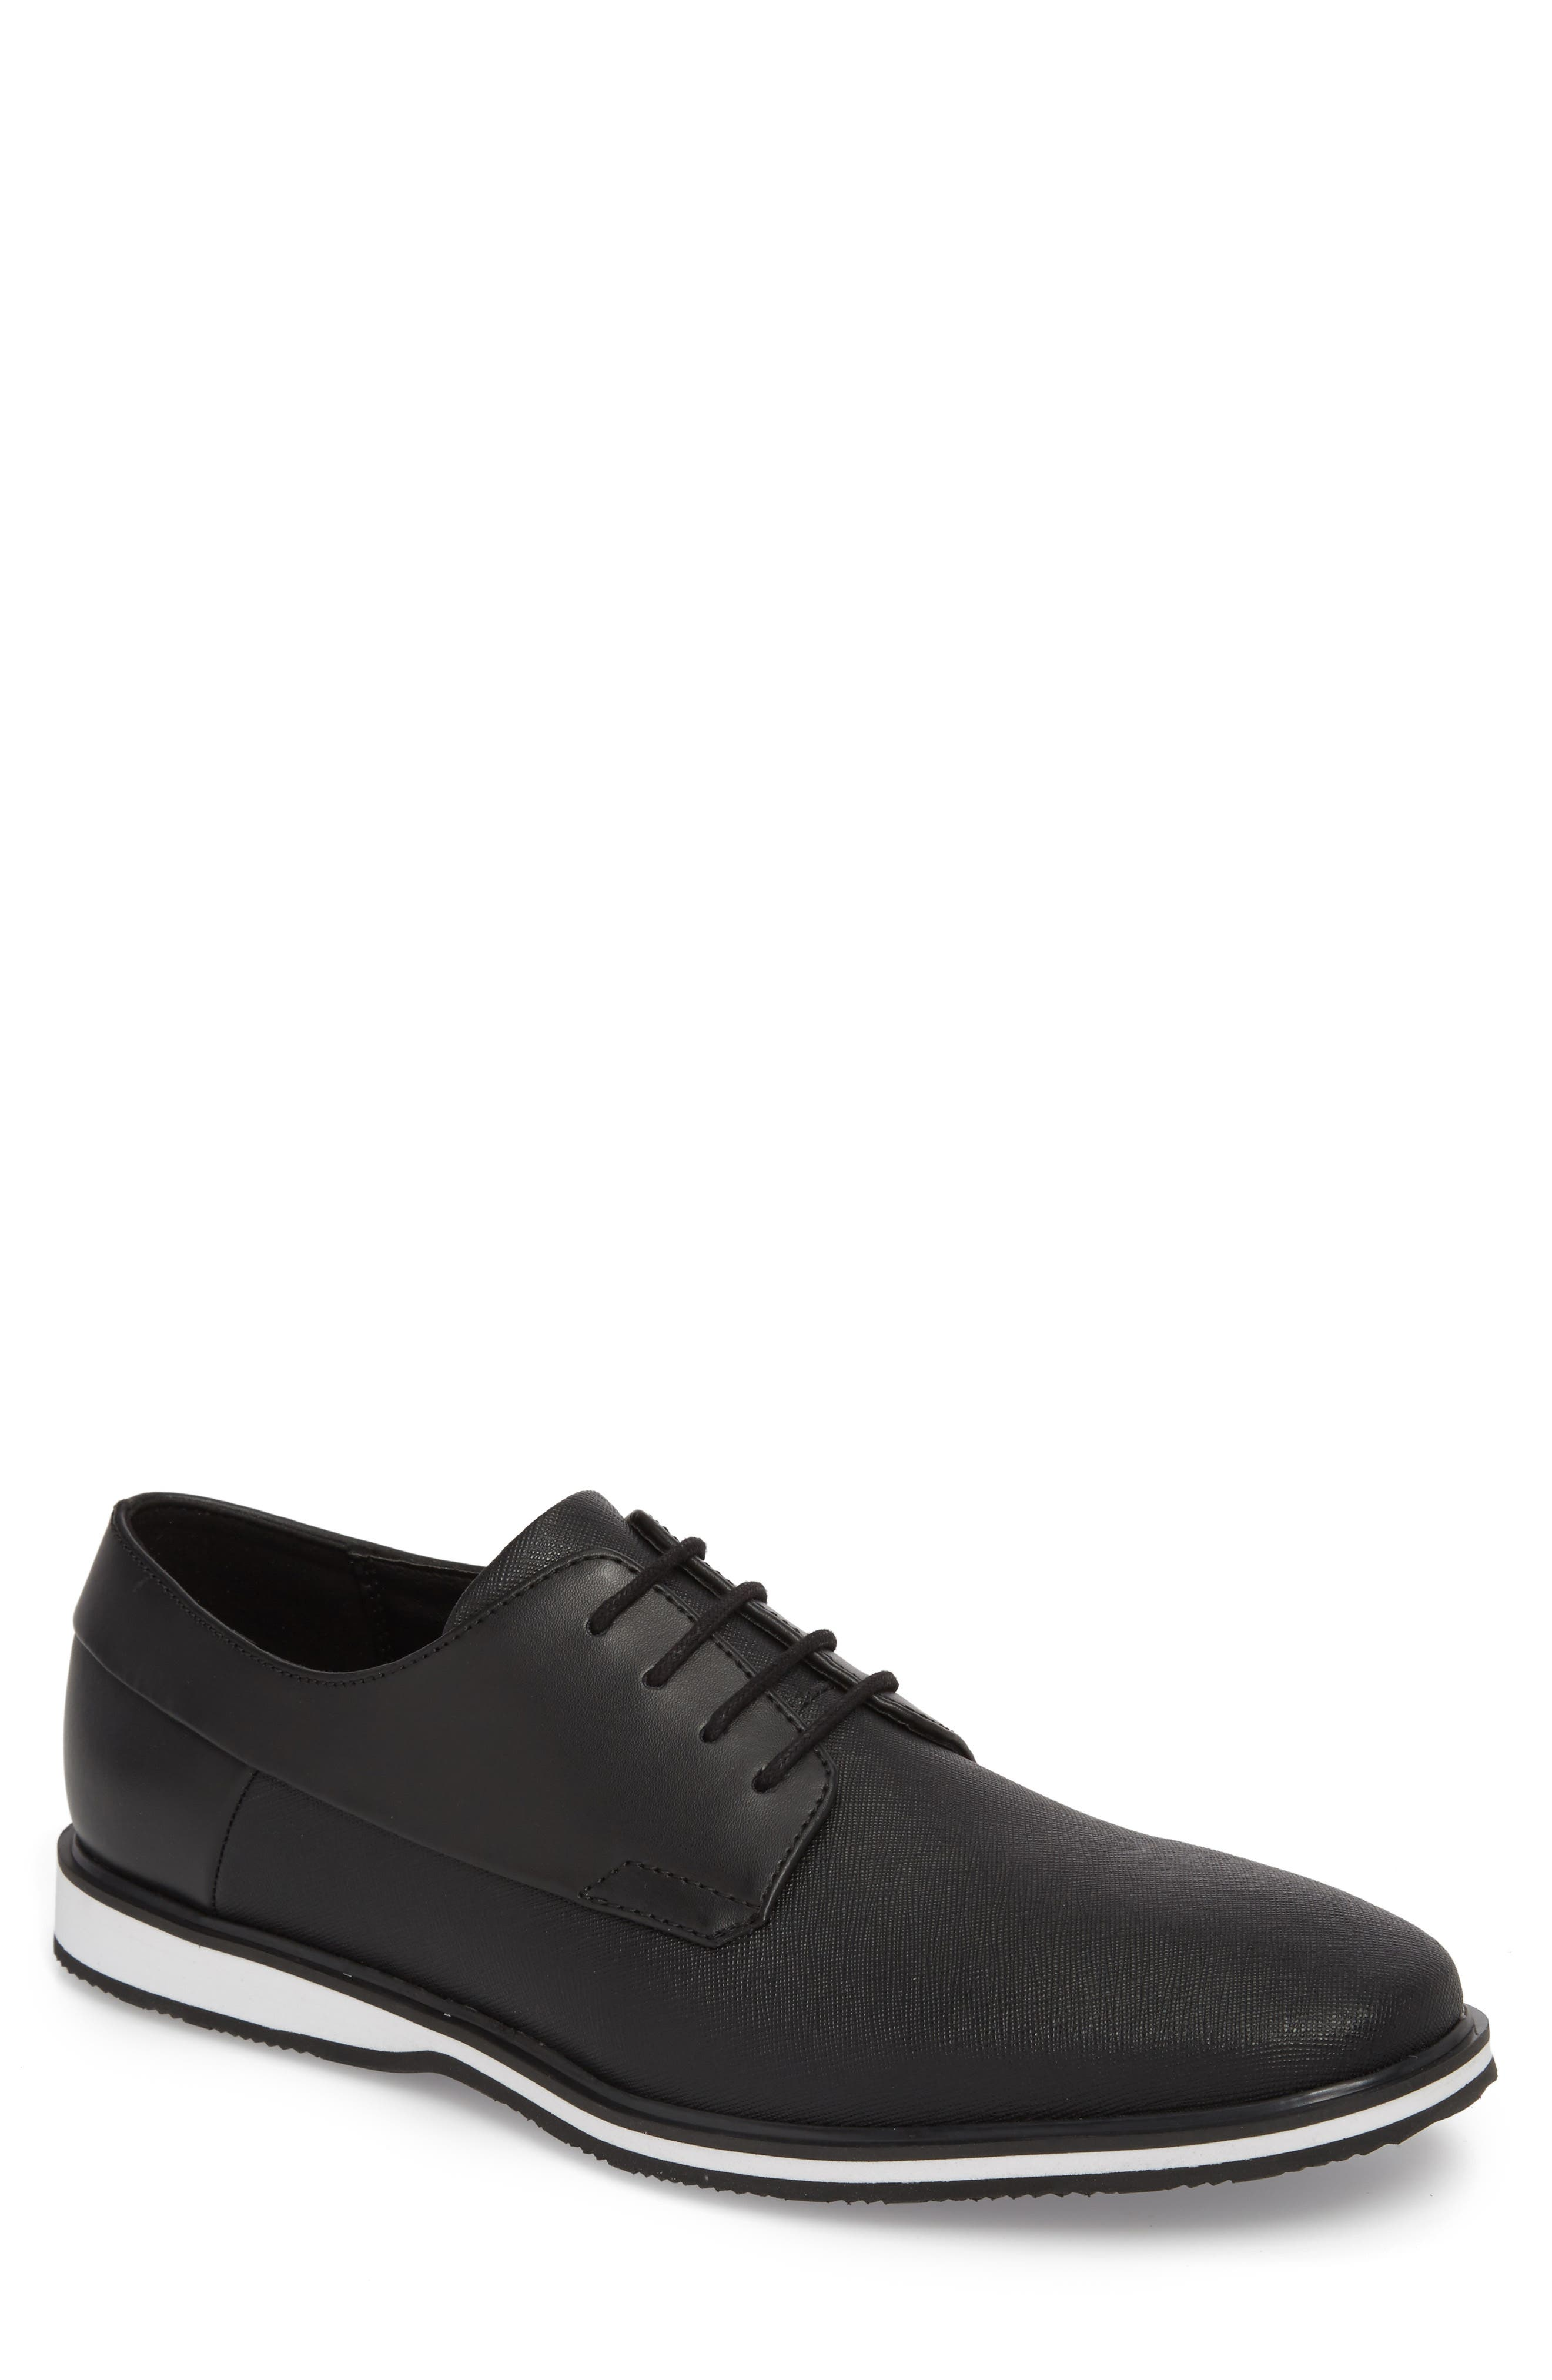 Wilfred Plain Toe Derby,                         Main,                         color,